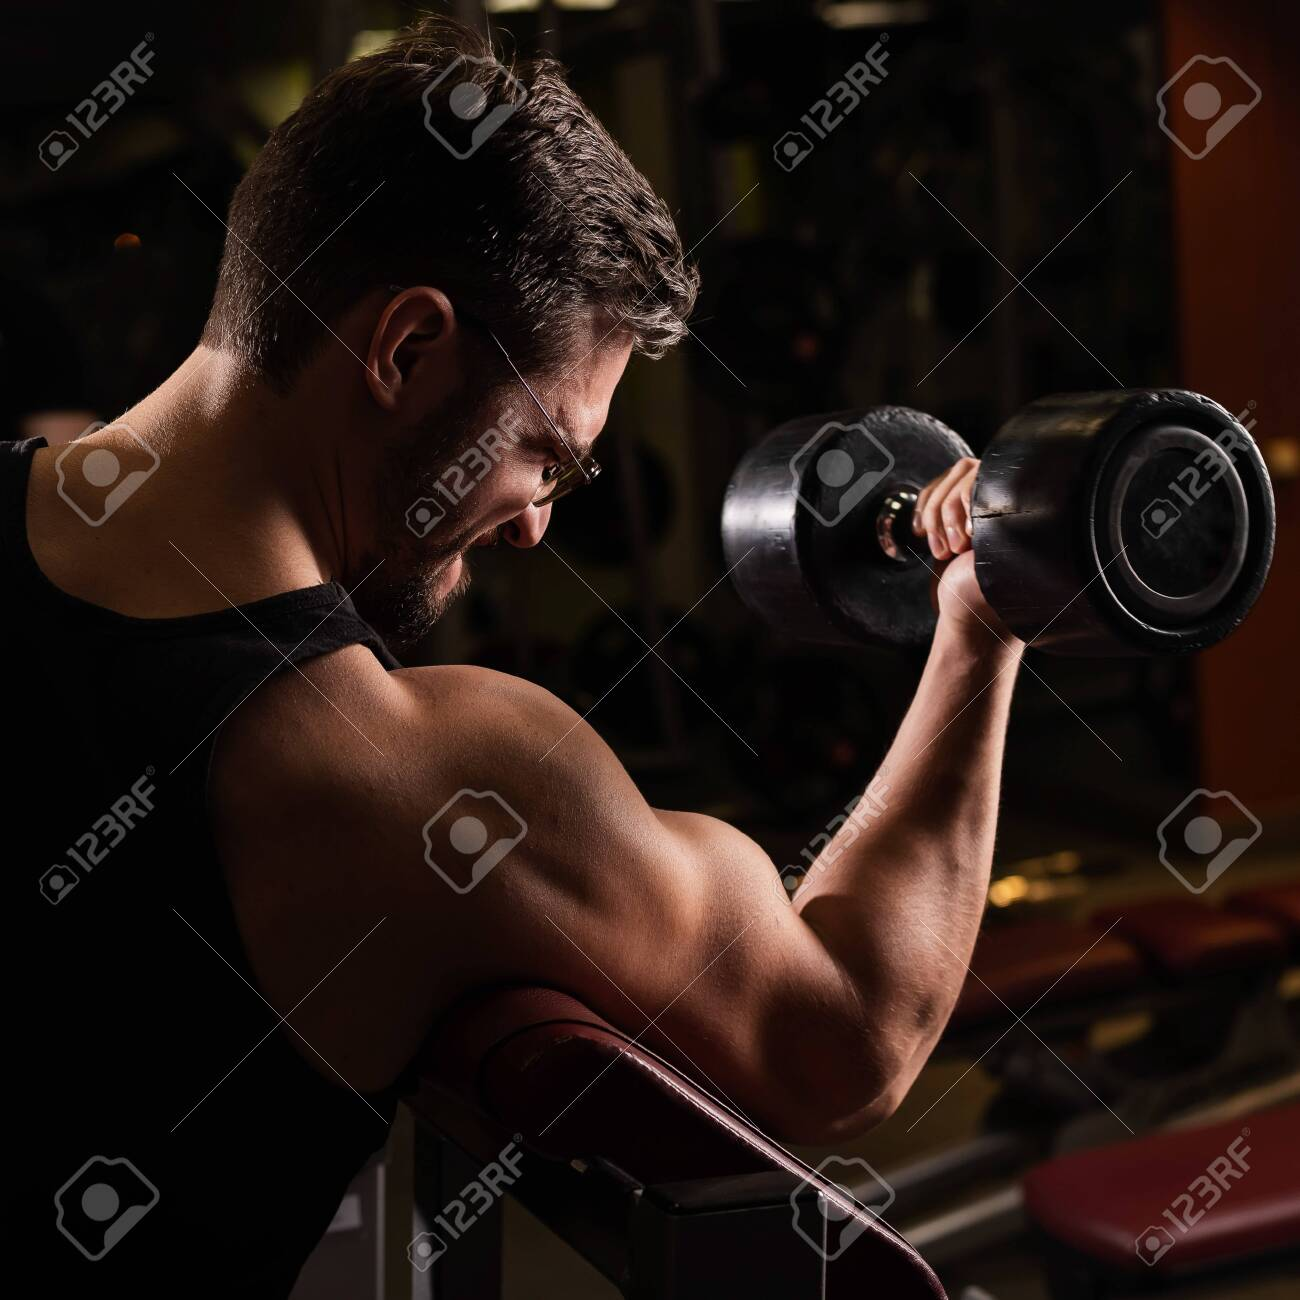 A handsome man with glasses doing an exercise for biceps with a barbell. The guy is engaged in bodybuilding. Trainer in the gym with muscular arms. - 142279774